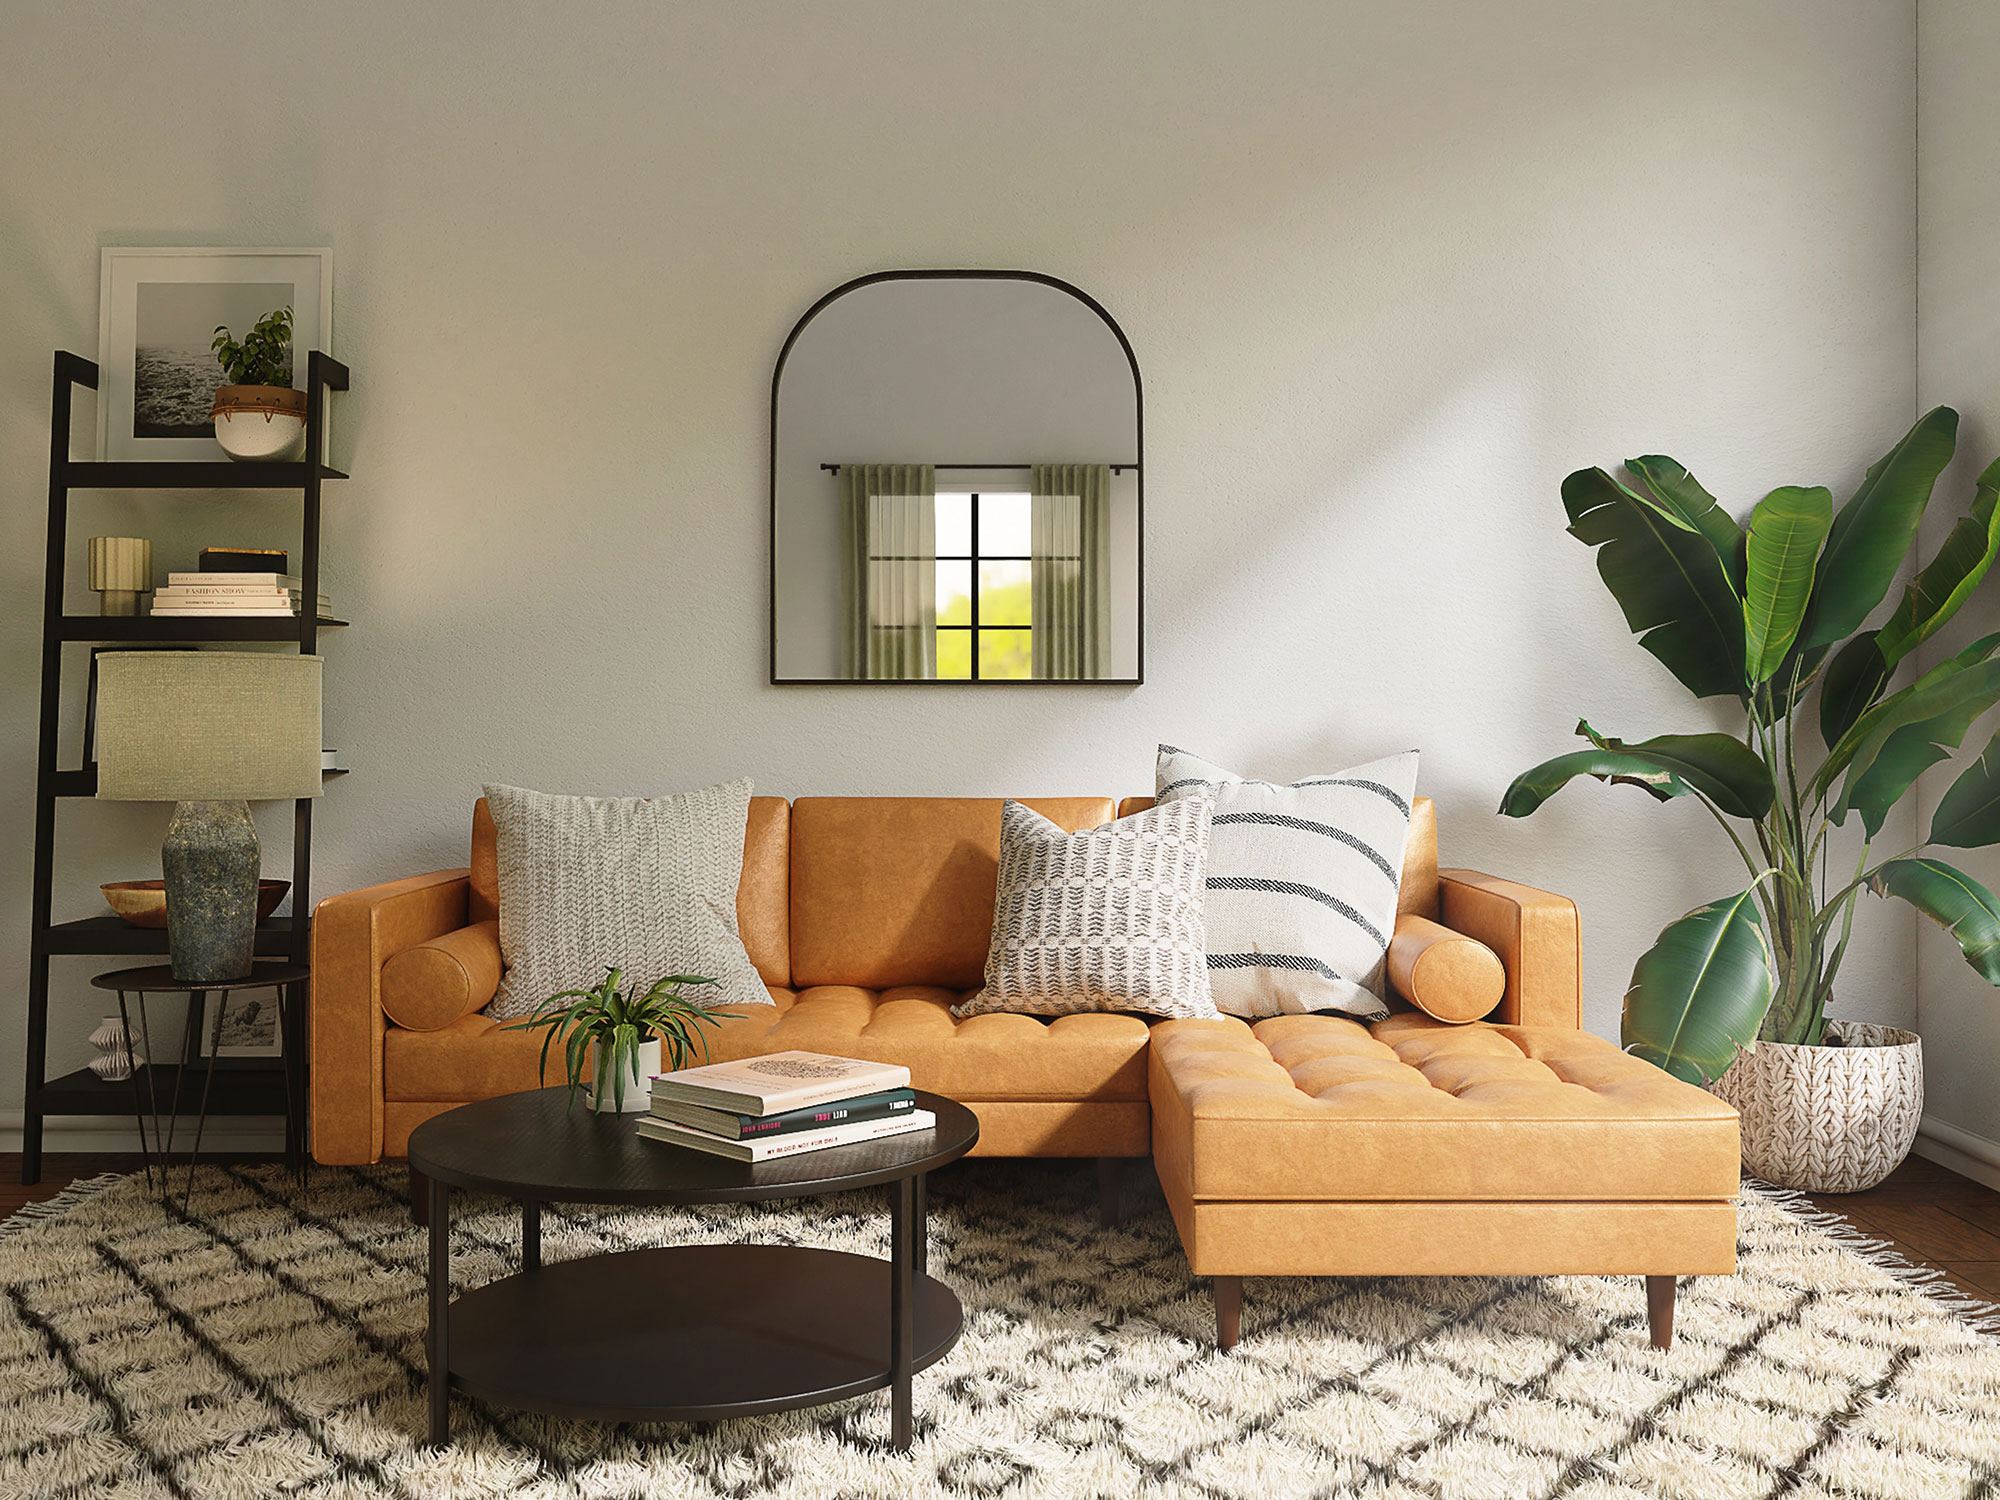 Modern living room with small sectional, coffee table, rug and decor